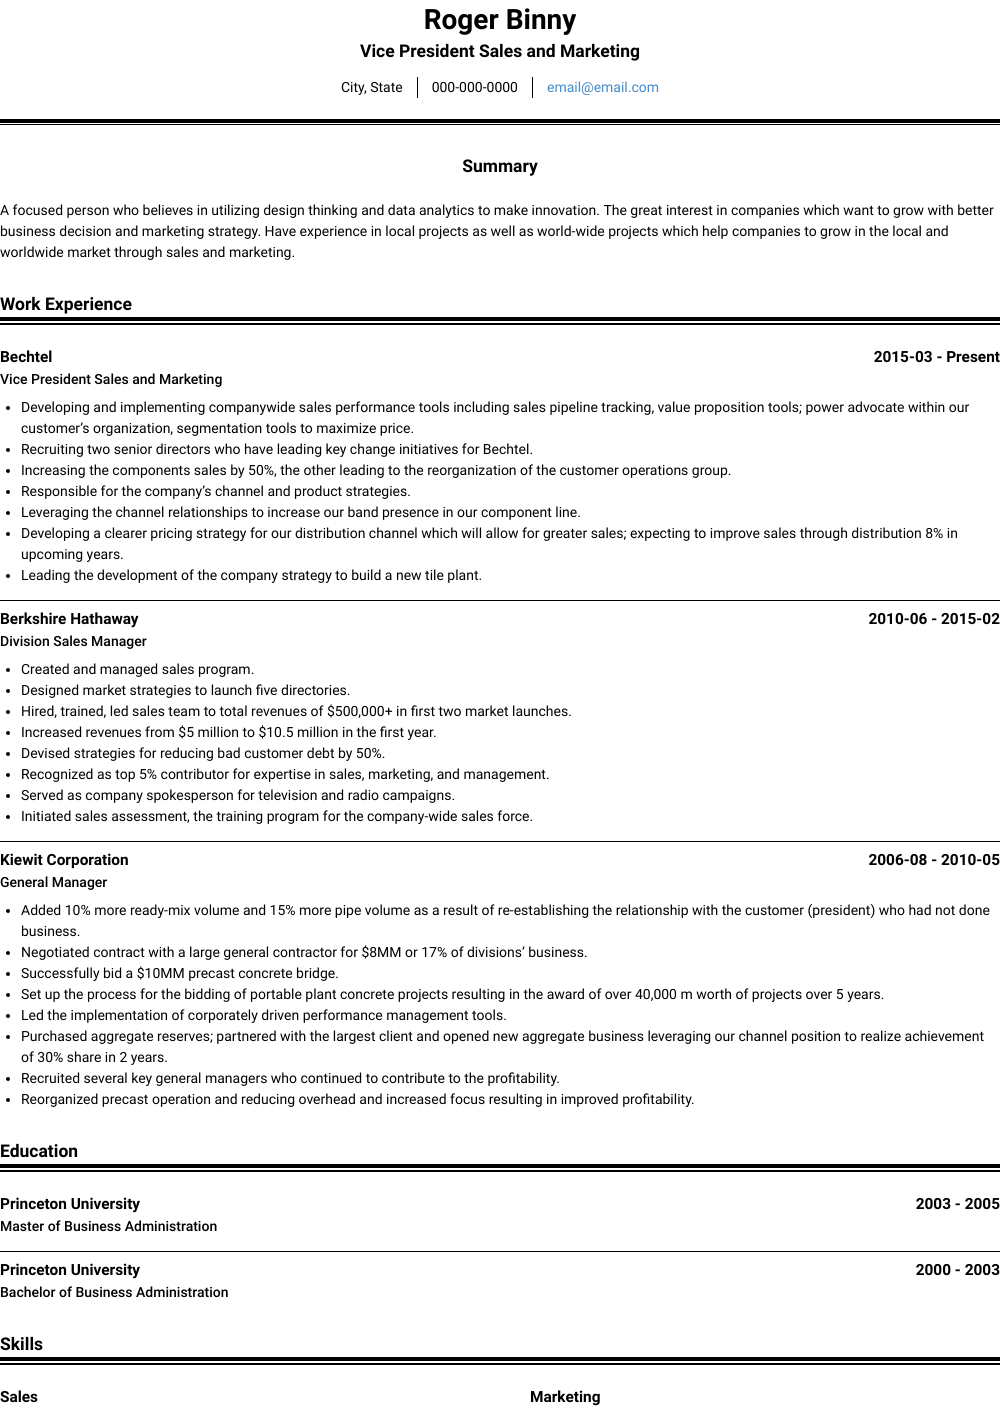 Vice President Sales And Marketing Resume Sample and Template